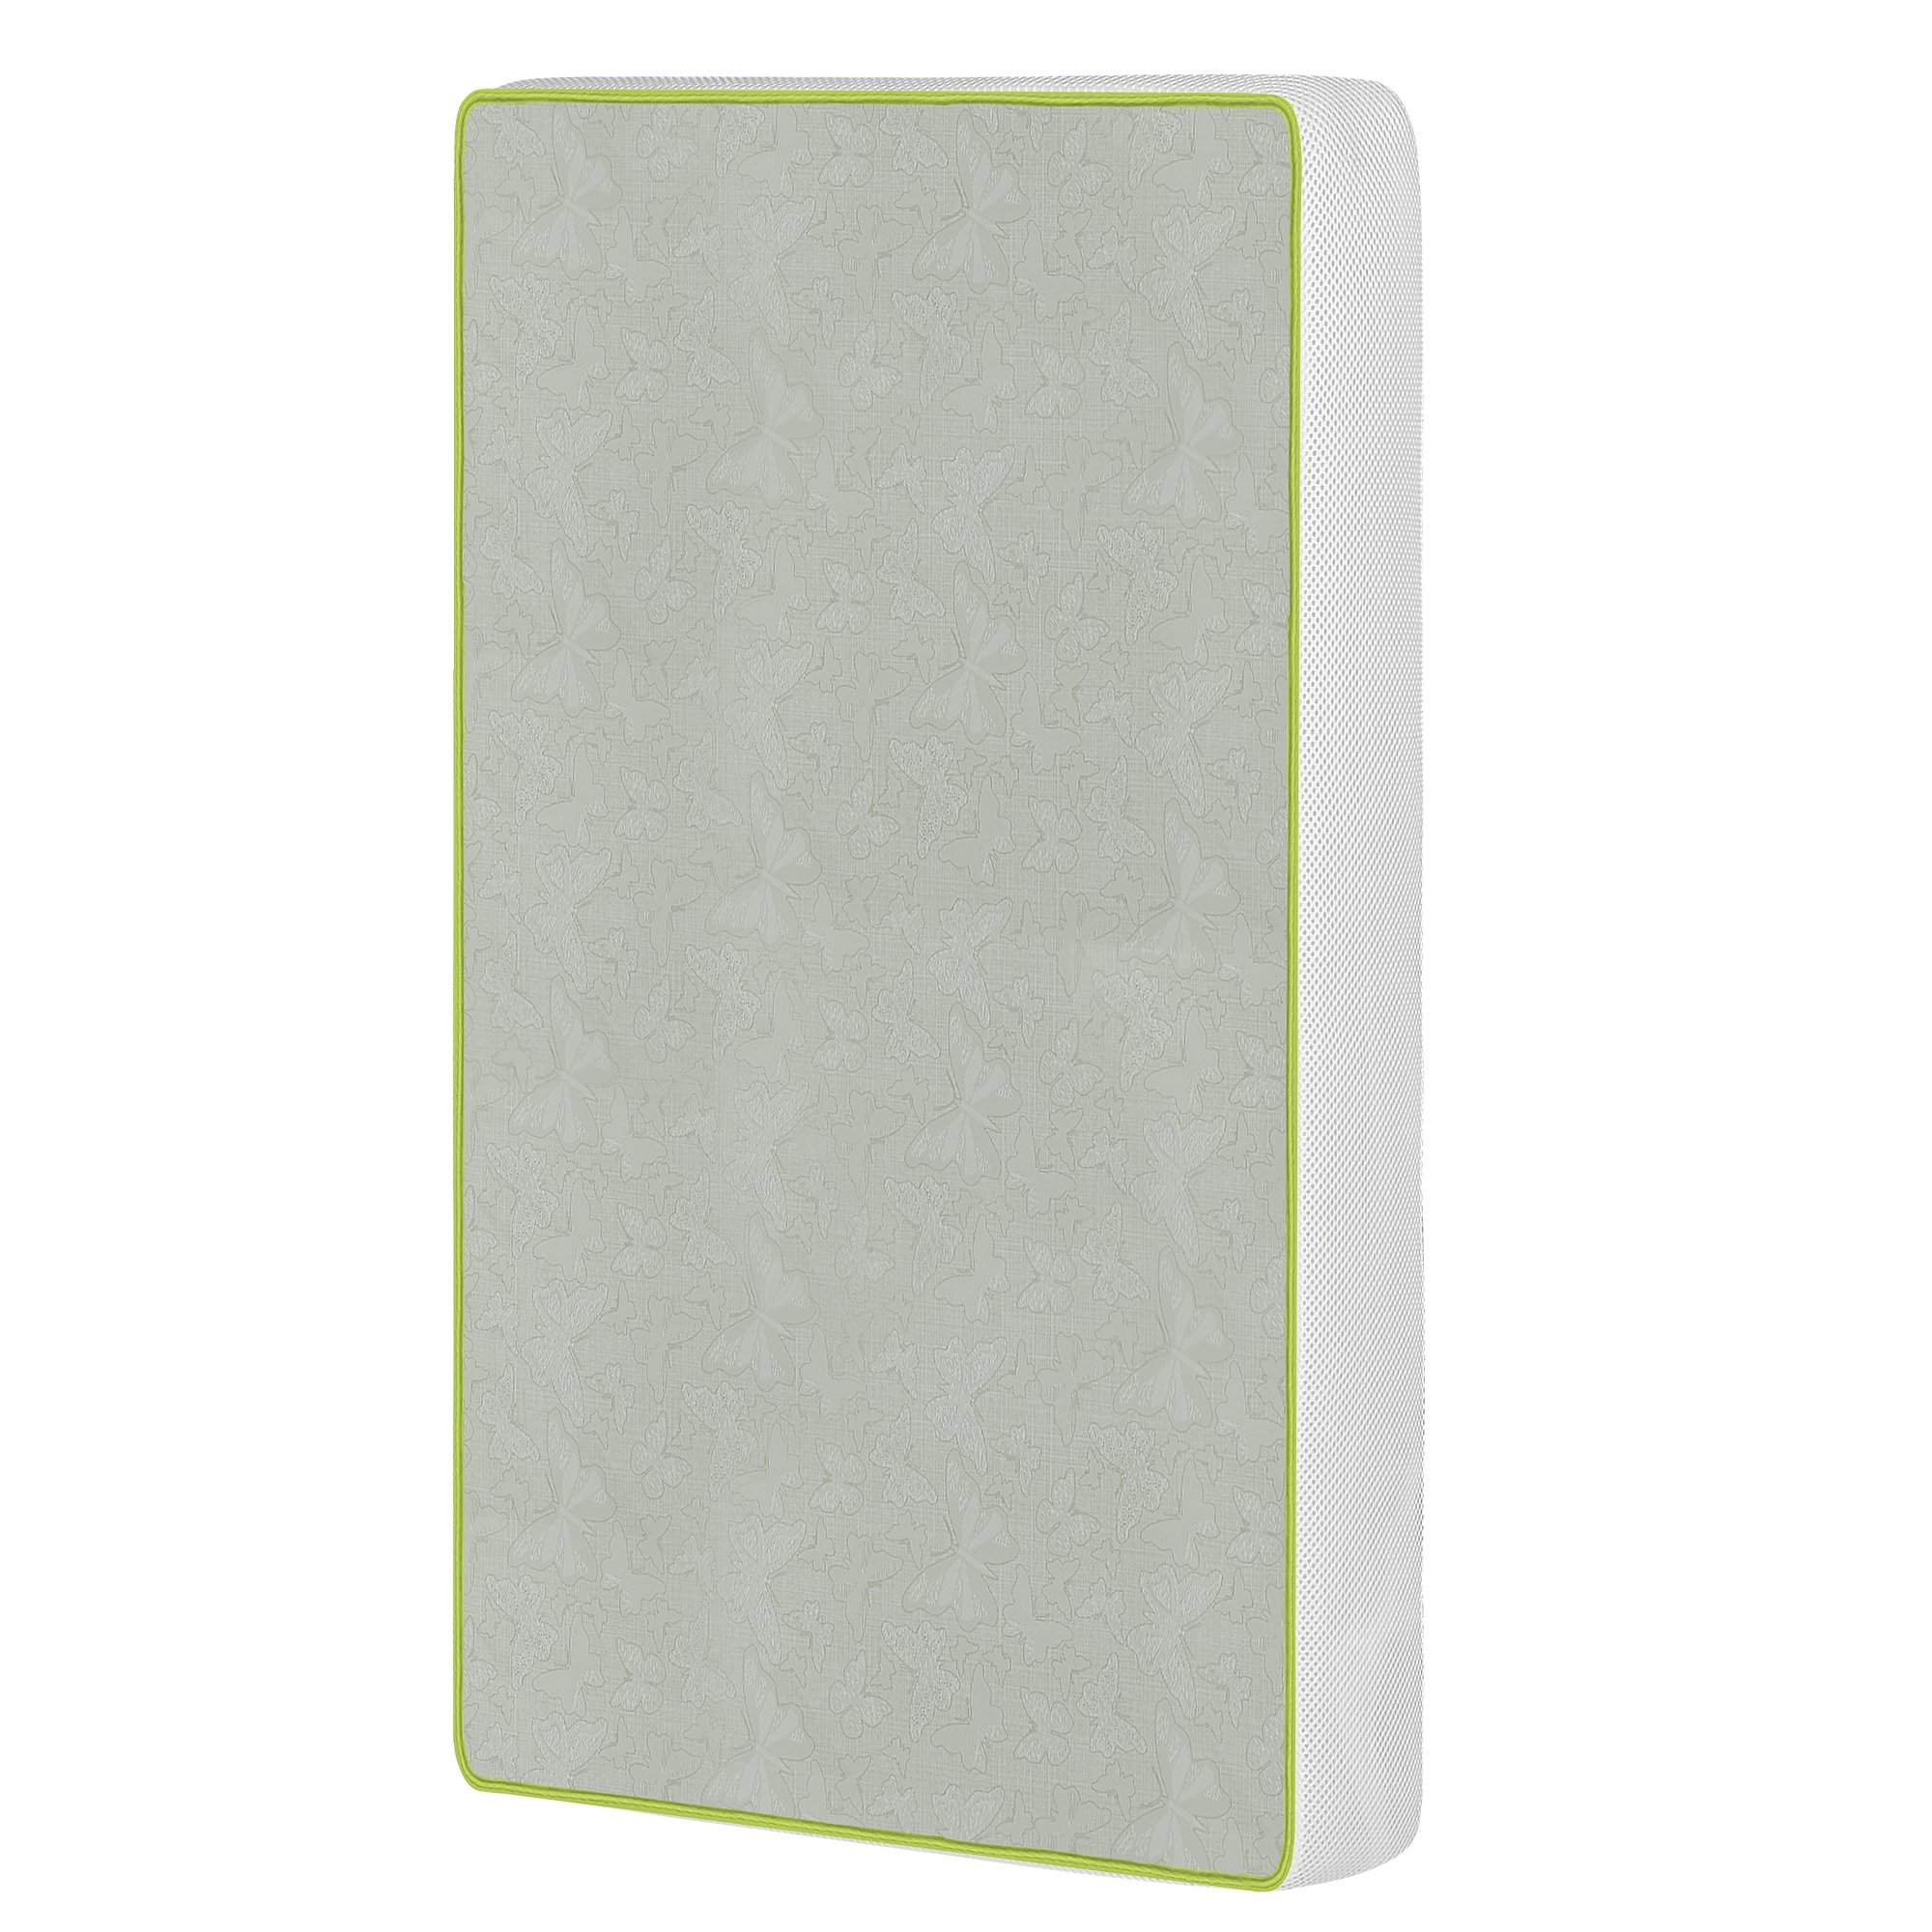 Dream On Me 2-in-1 Breathable Two-Sided Portable Crib Foam Mattress, White/Green by Dream On Me